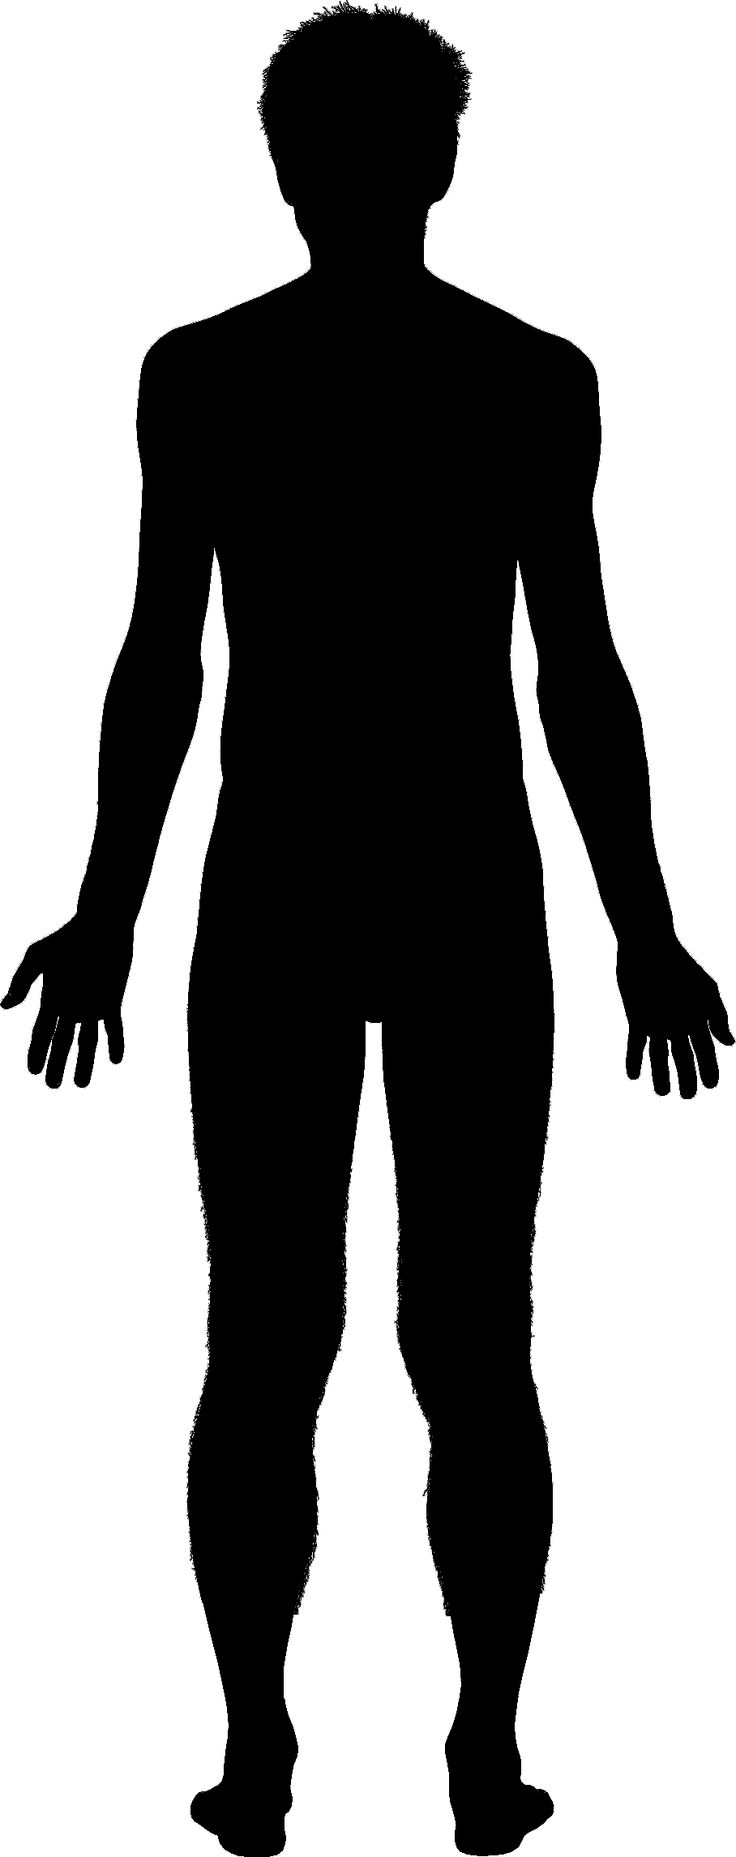 736x1857 Free Clipart Human Outline